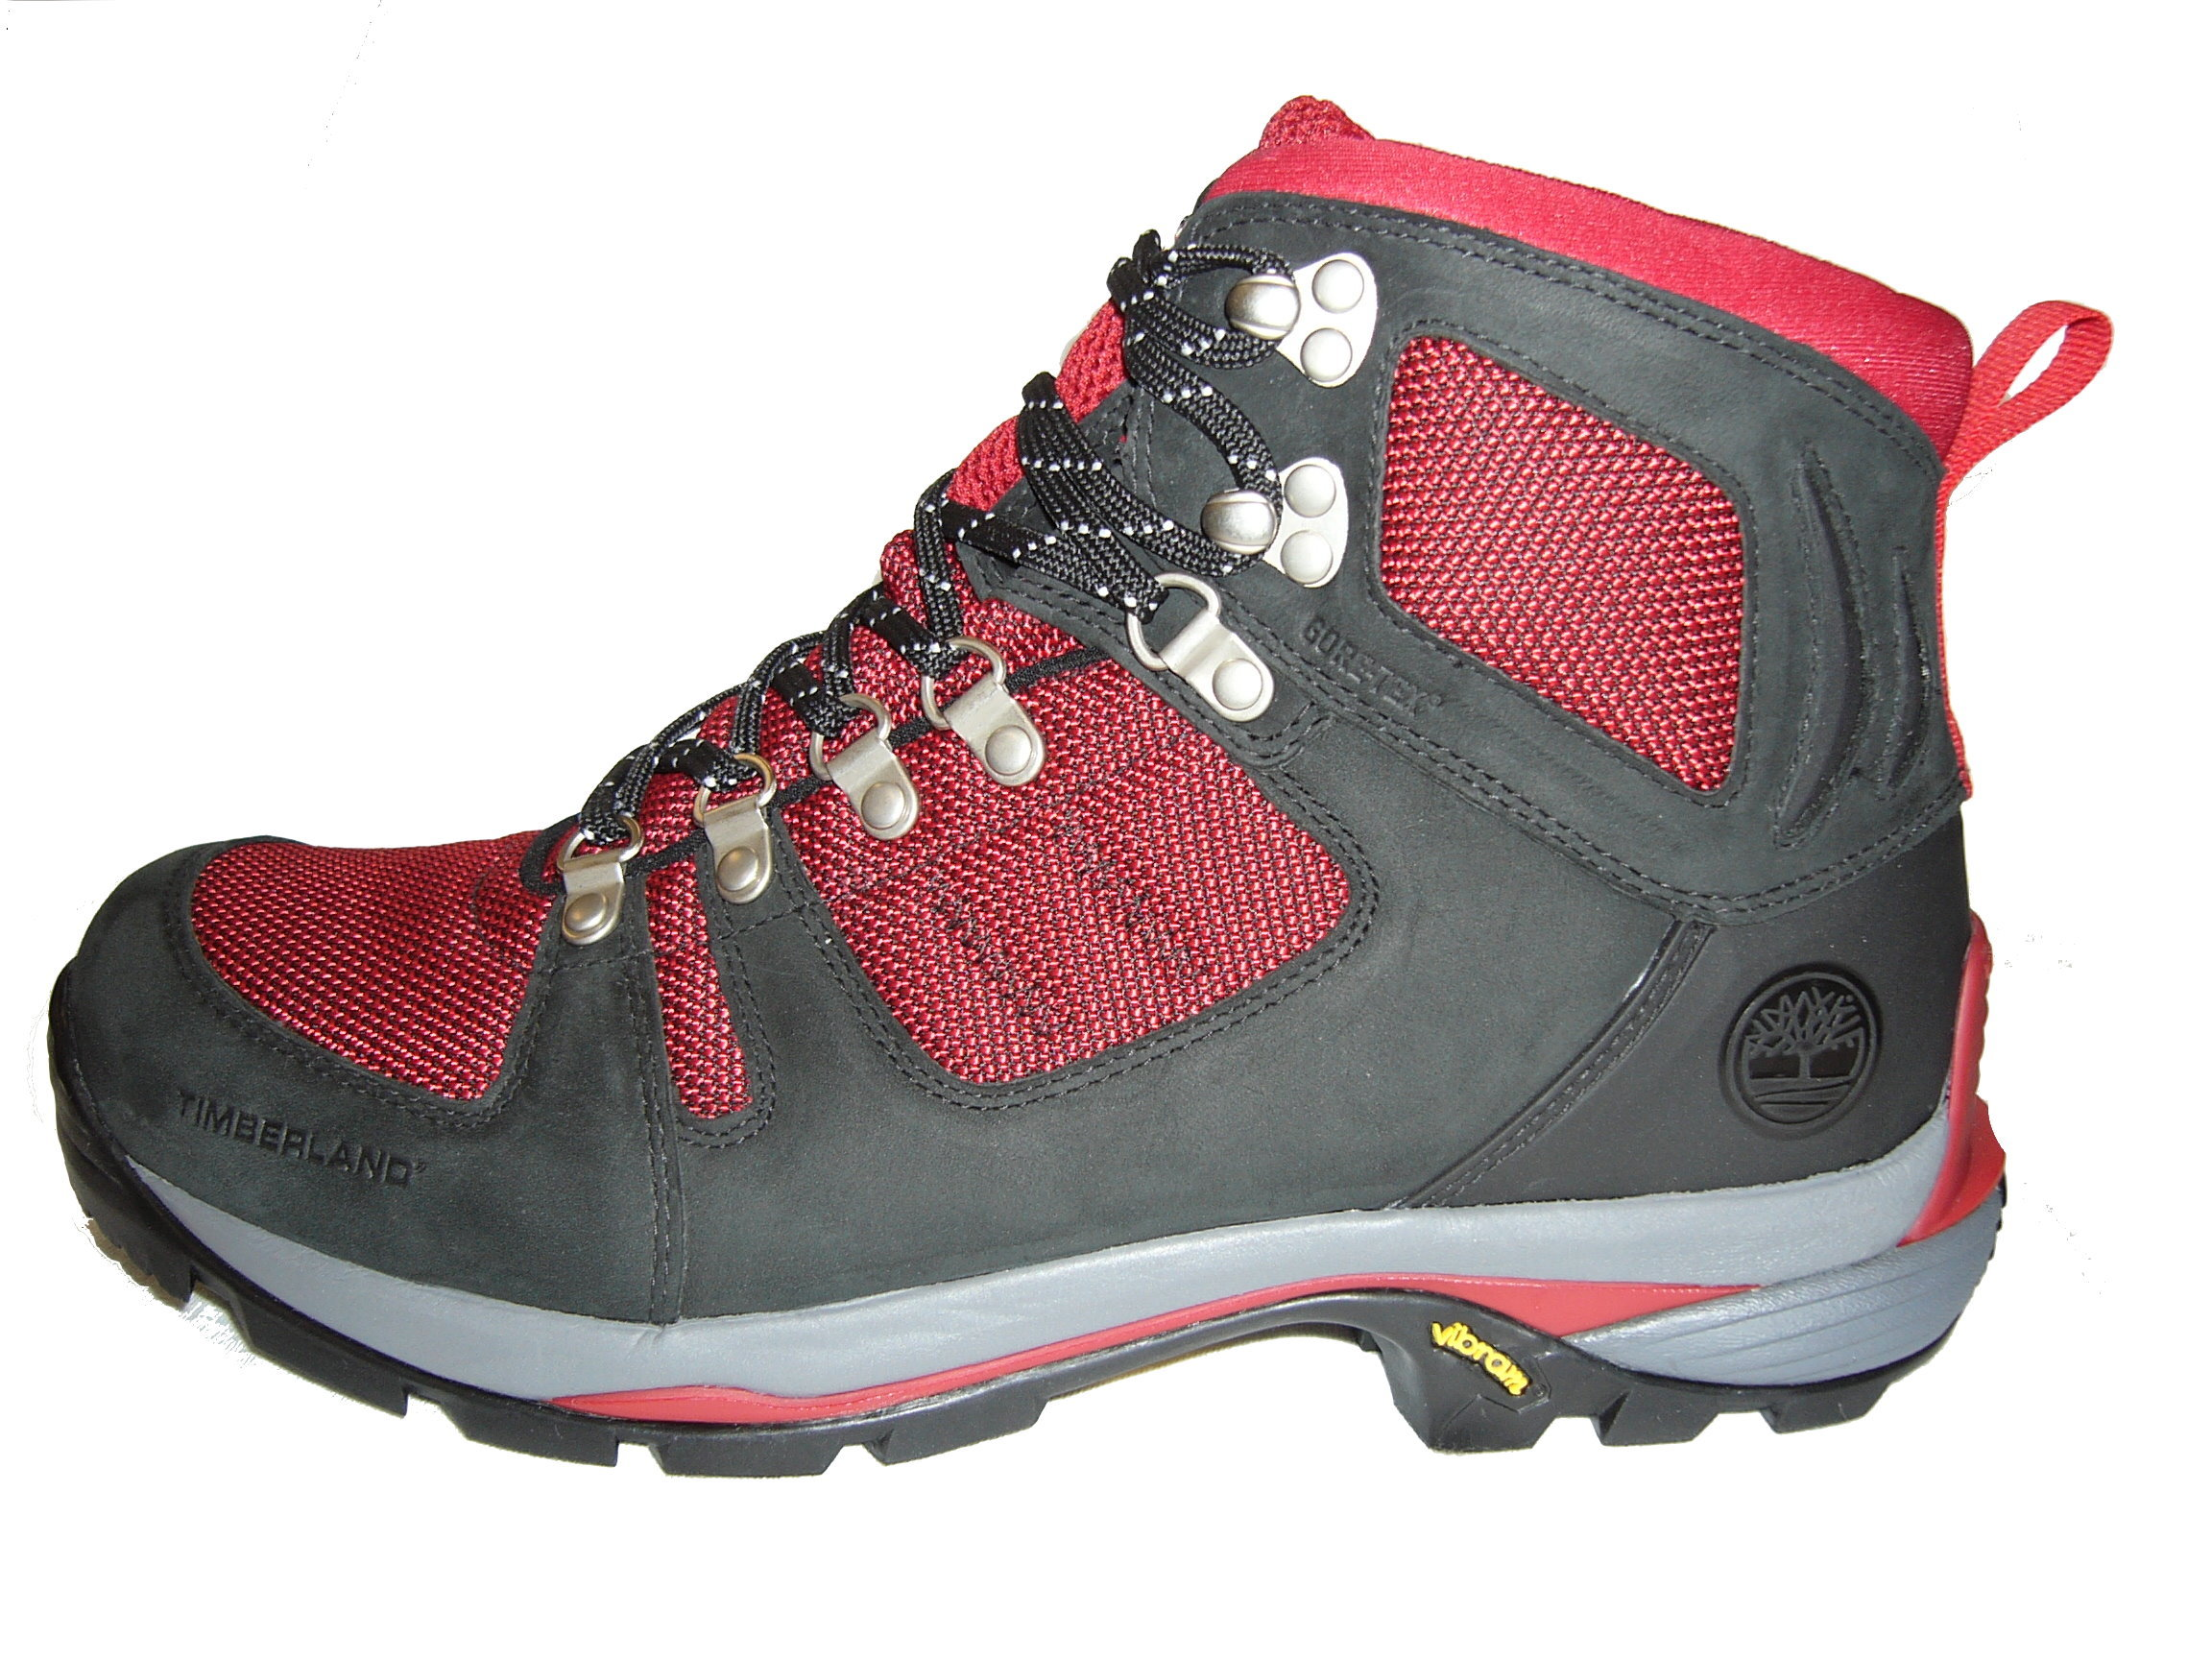 4e02ce1a1c35 Timberland Cadion Hiker   COLOR  BLACK RED   90159 - Scotteez Urban